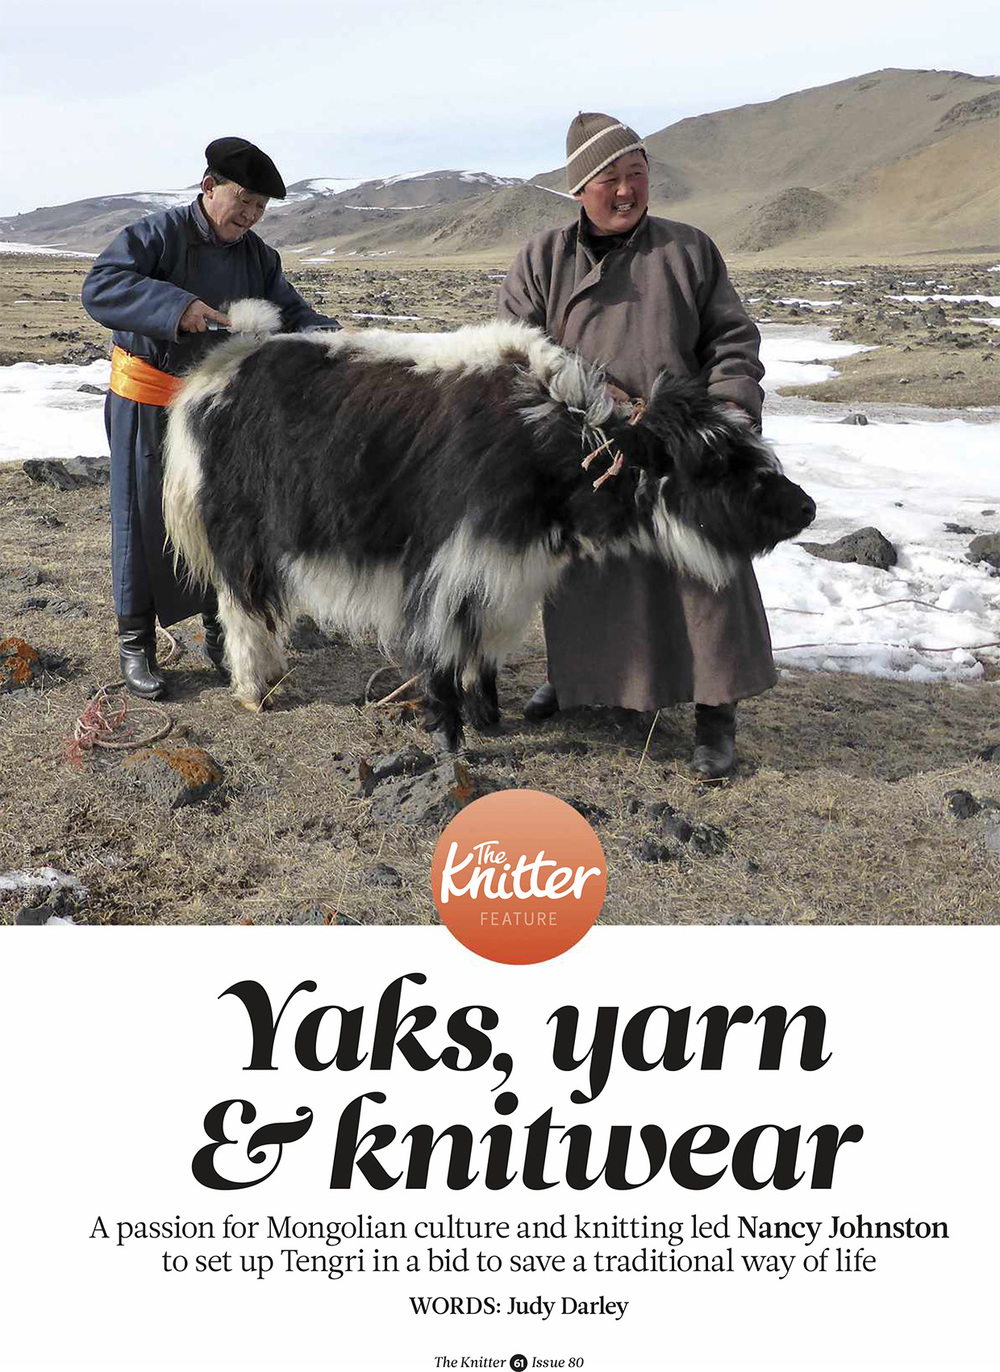 The-knitter-magazine_pg61_tengri.jpg